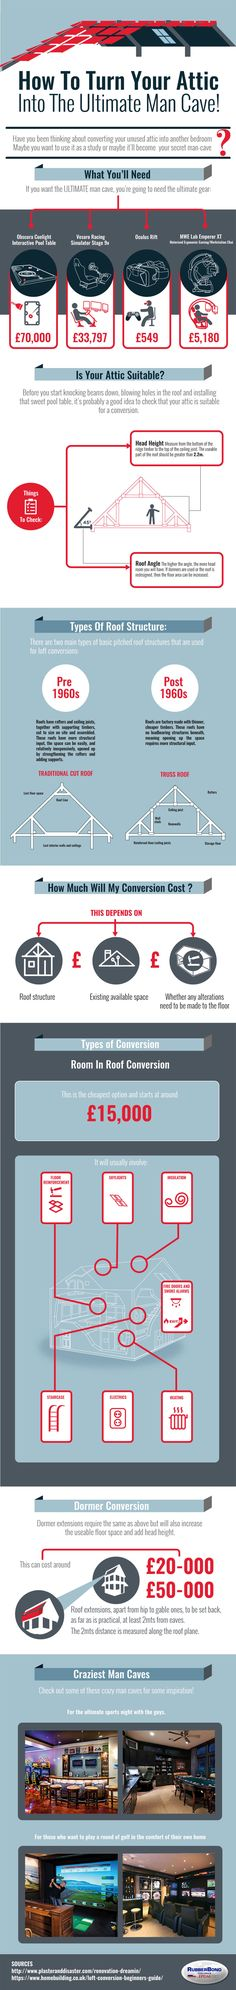 How To Convert Your Attic Into a Perfect Man Cave Infographic. Topic: interior design and home improvement of attic and loft conversion. Roof insulation, game room.